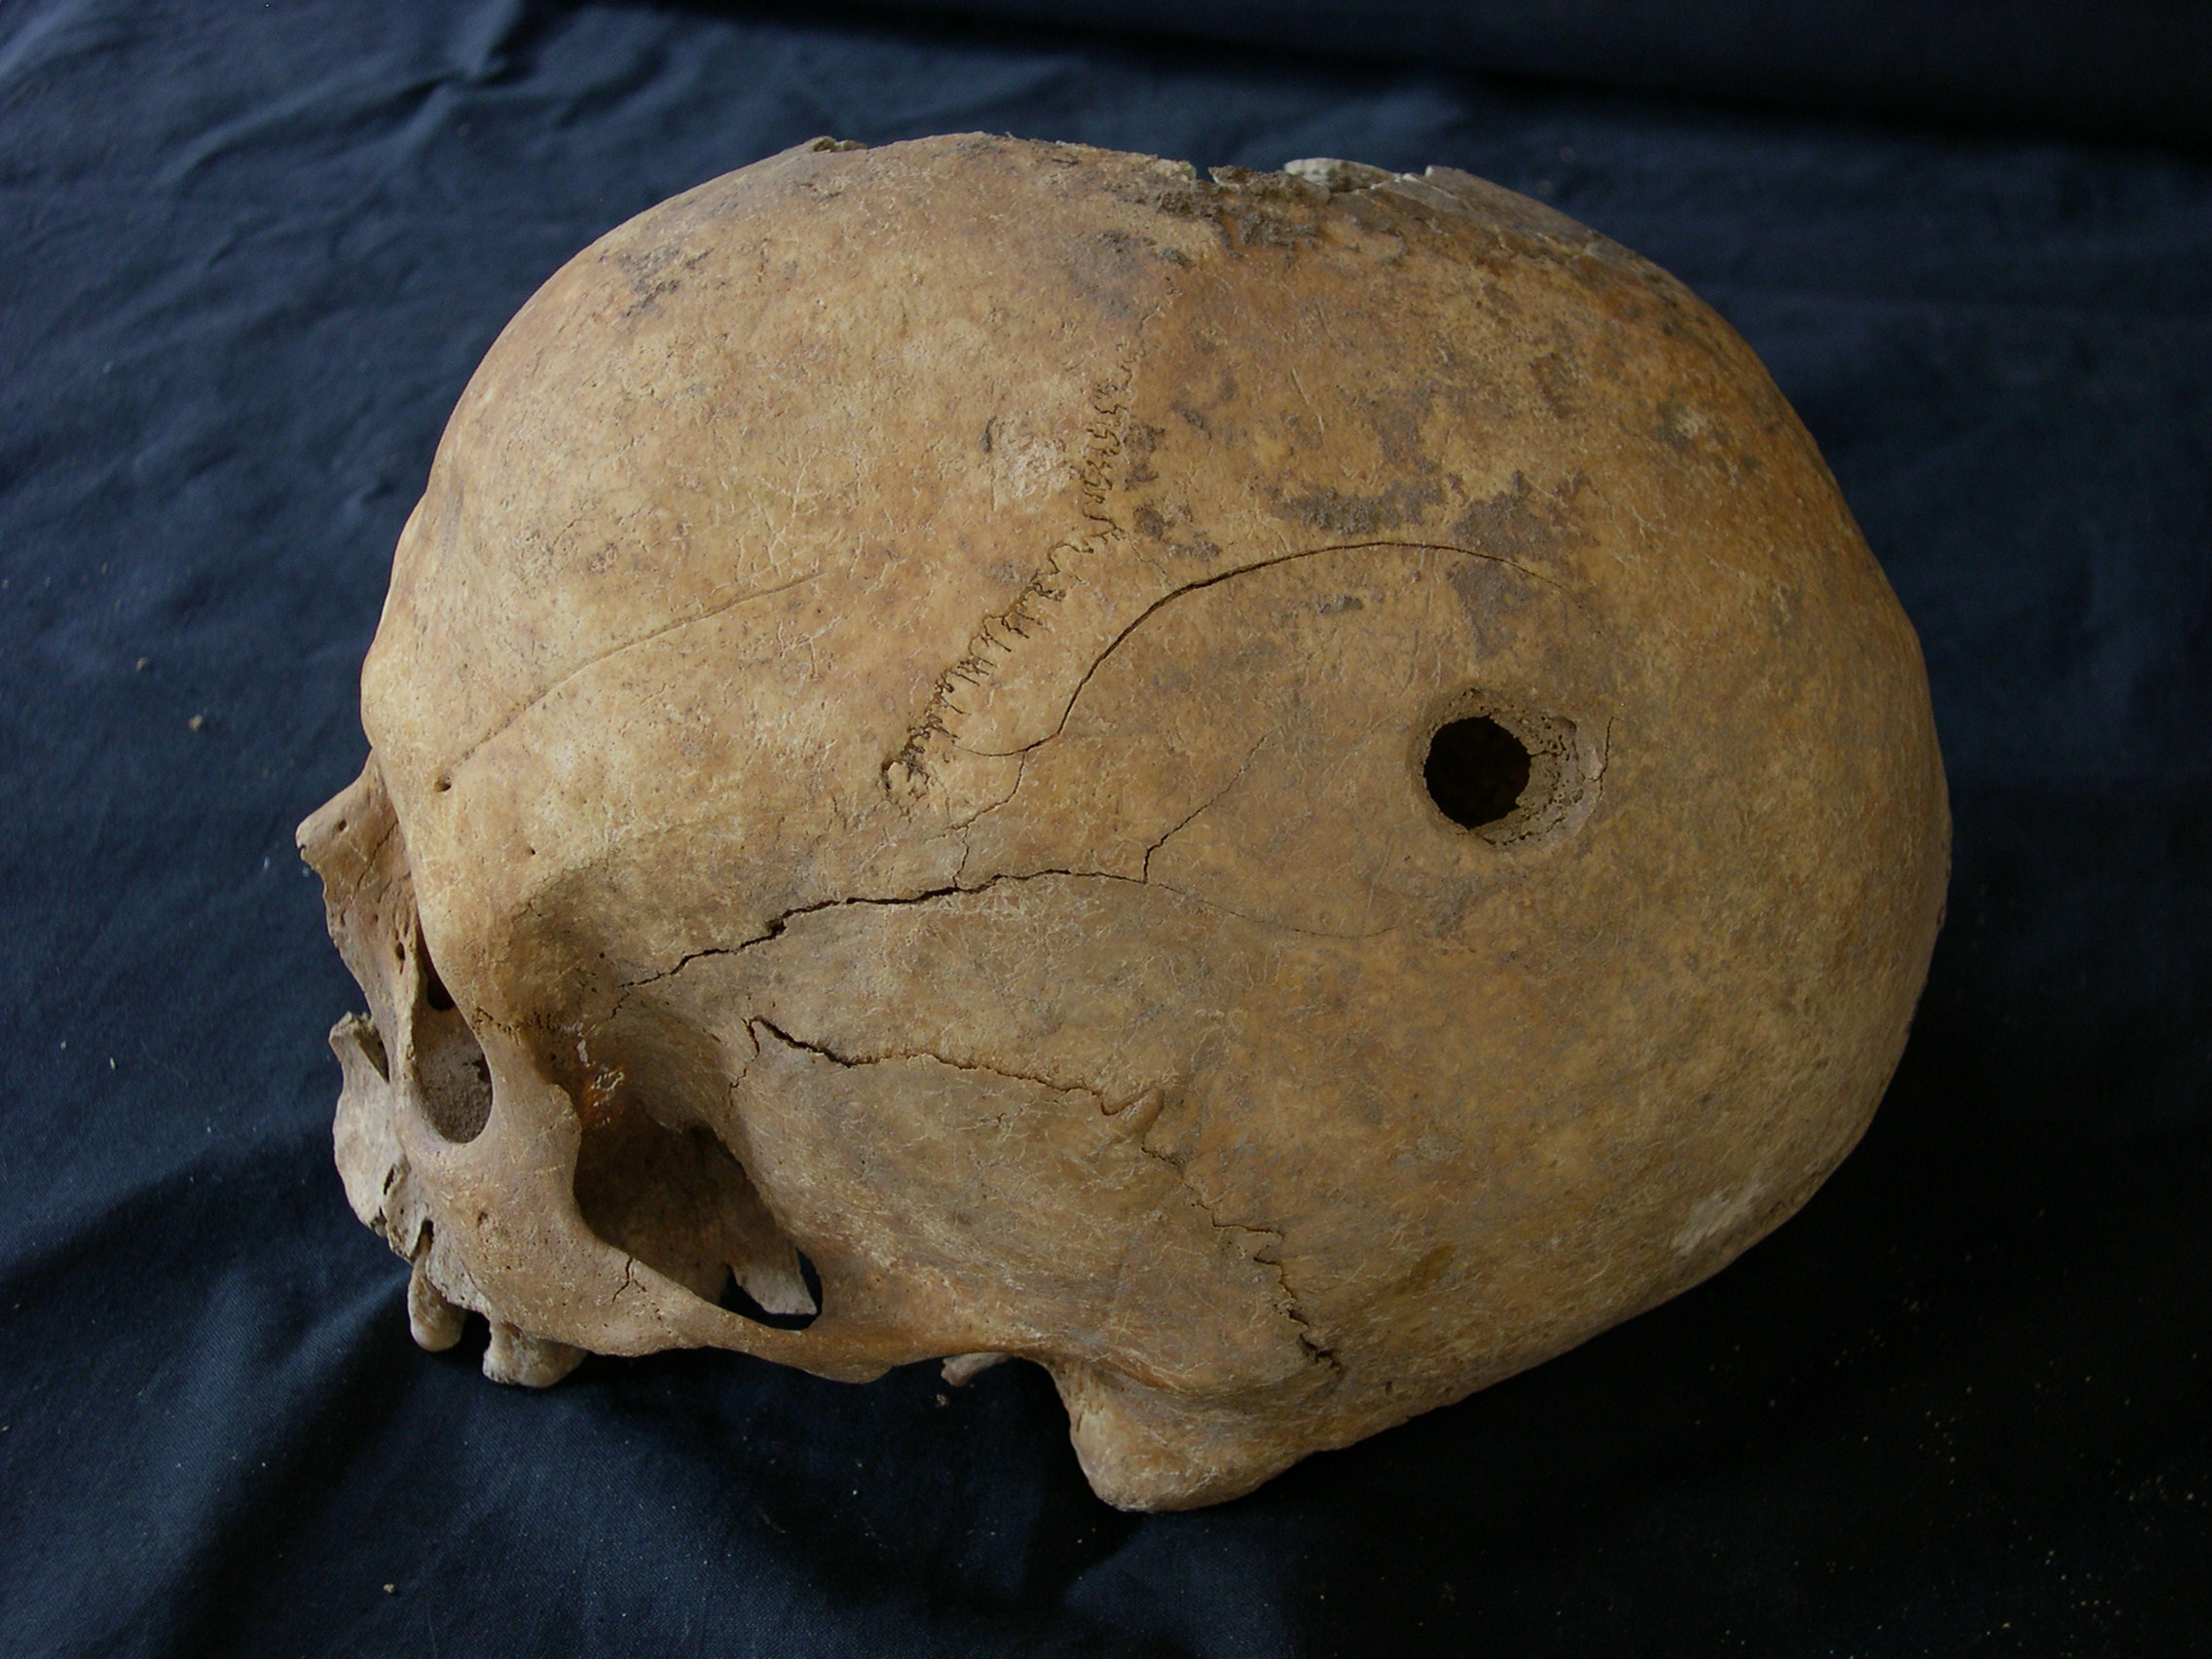 Two trepanned skulls from the Middles Ages are found in Soria, Spain